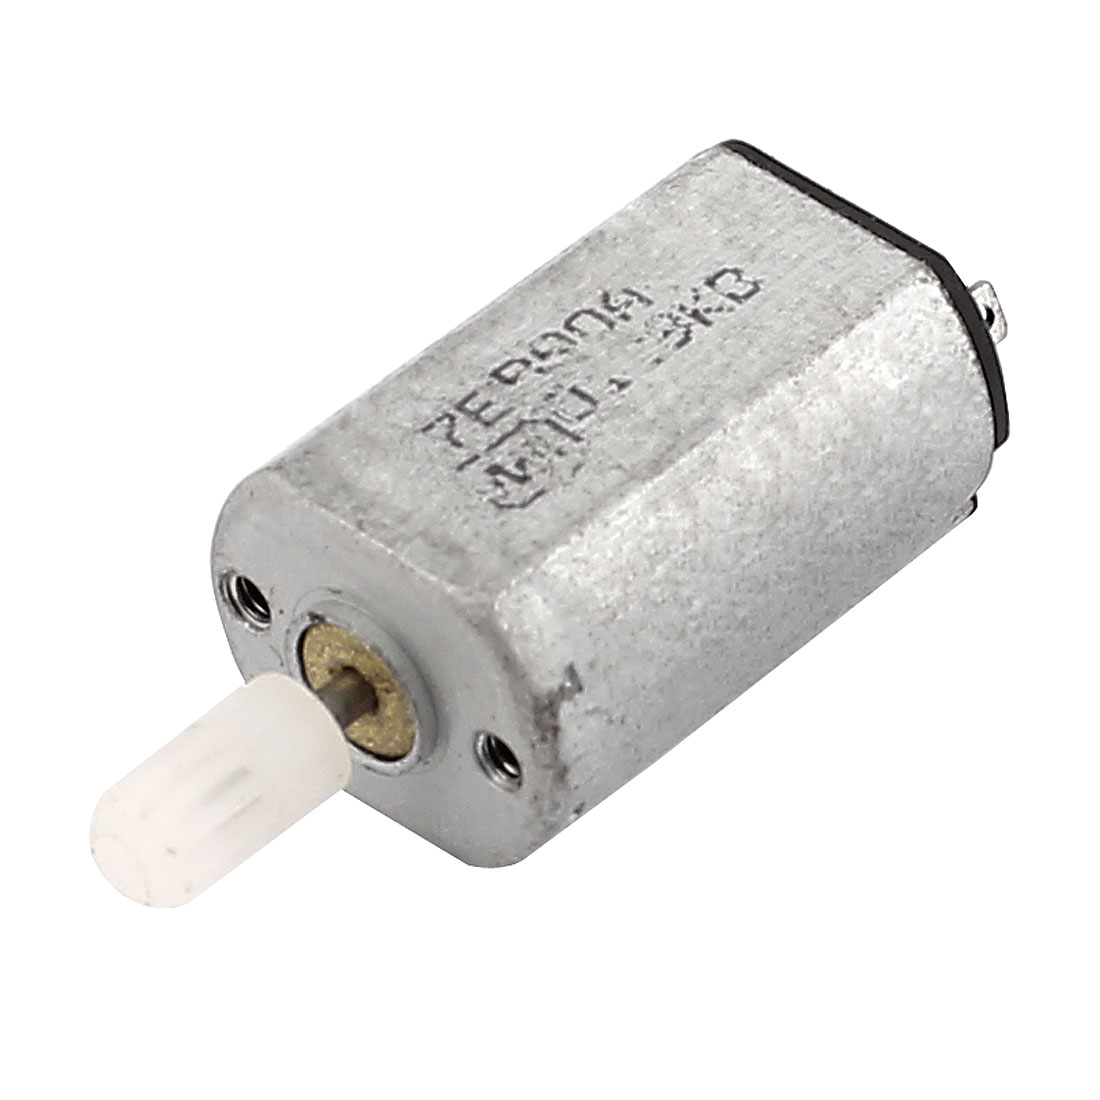 DC 4.5V 22000RPM High Speed Mini Micro Motor for Massager